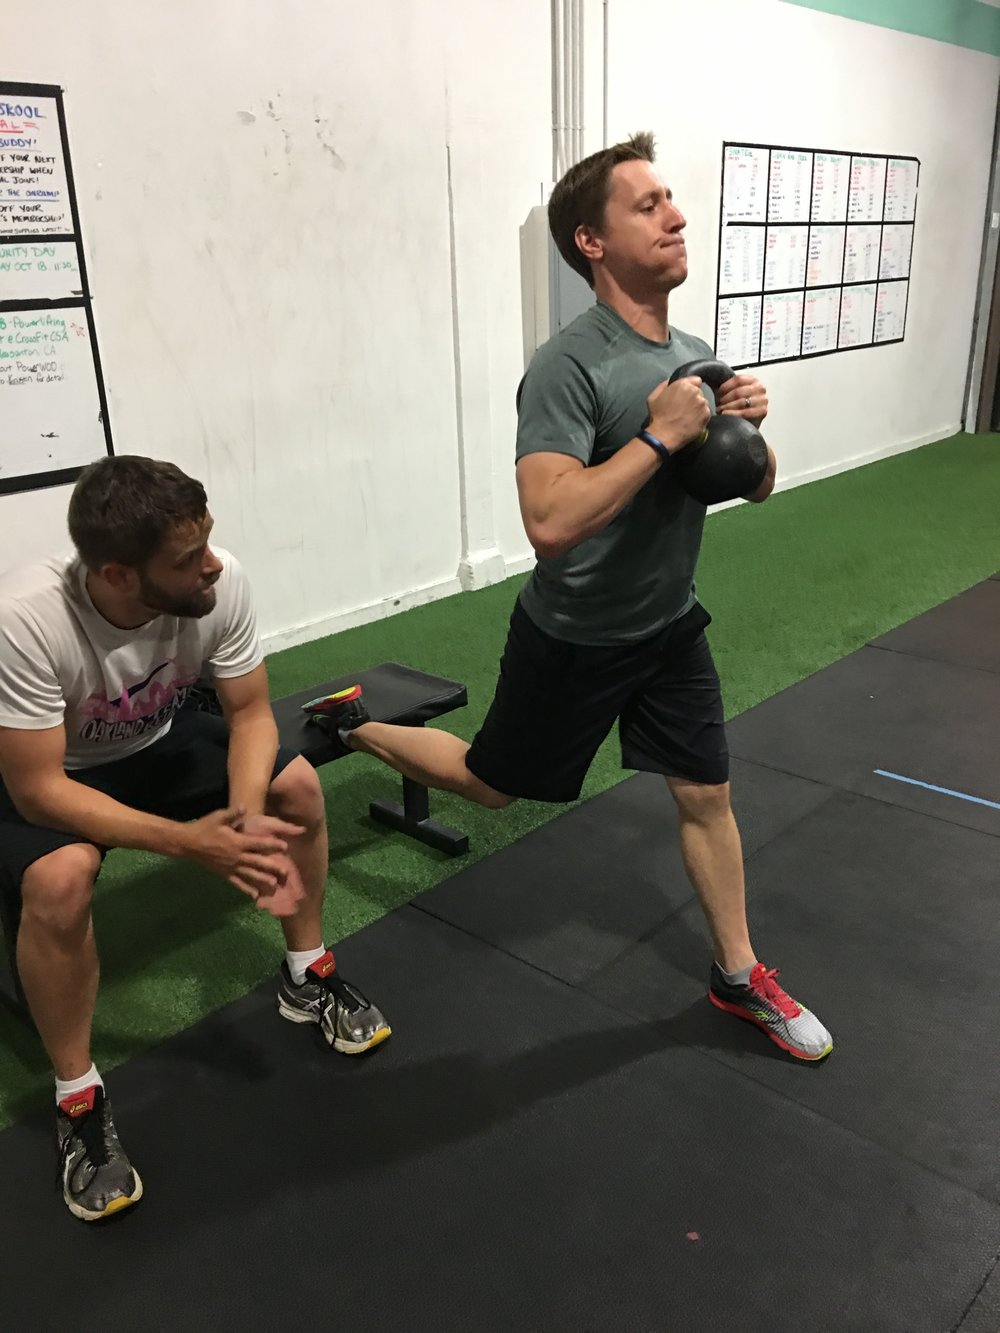 Kevin anchoring Jeremy's split squats